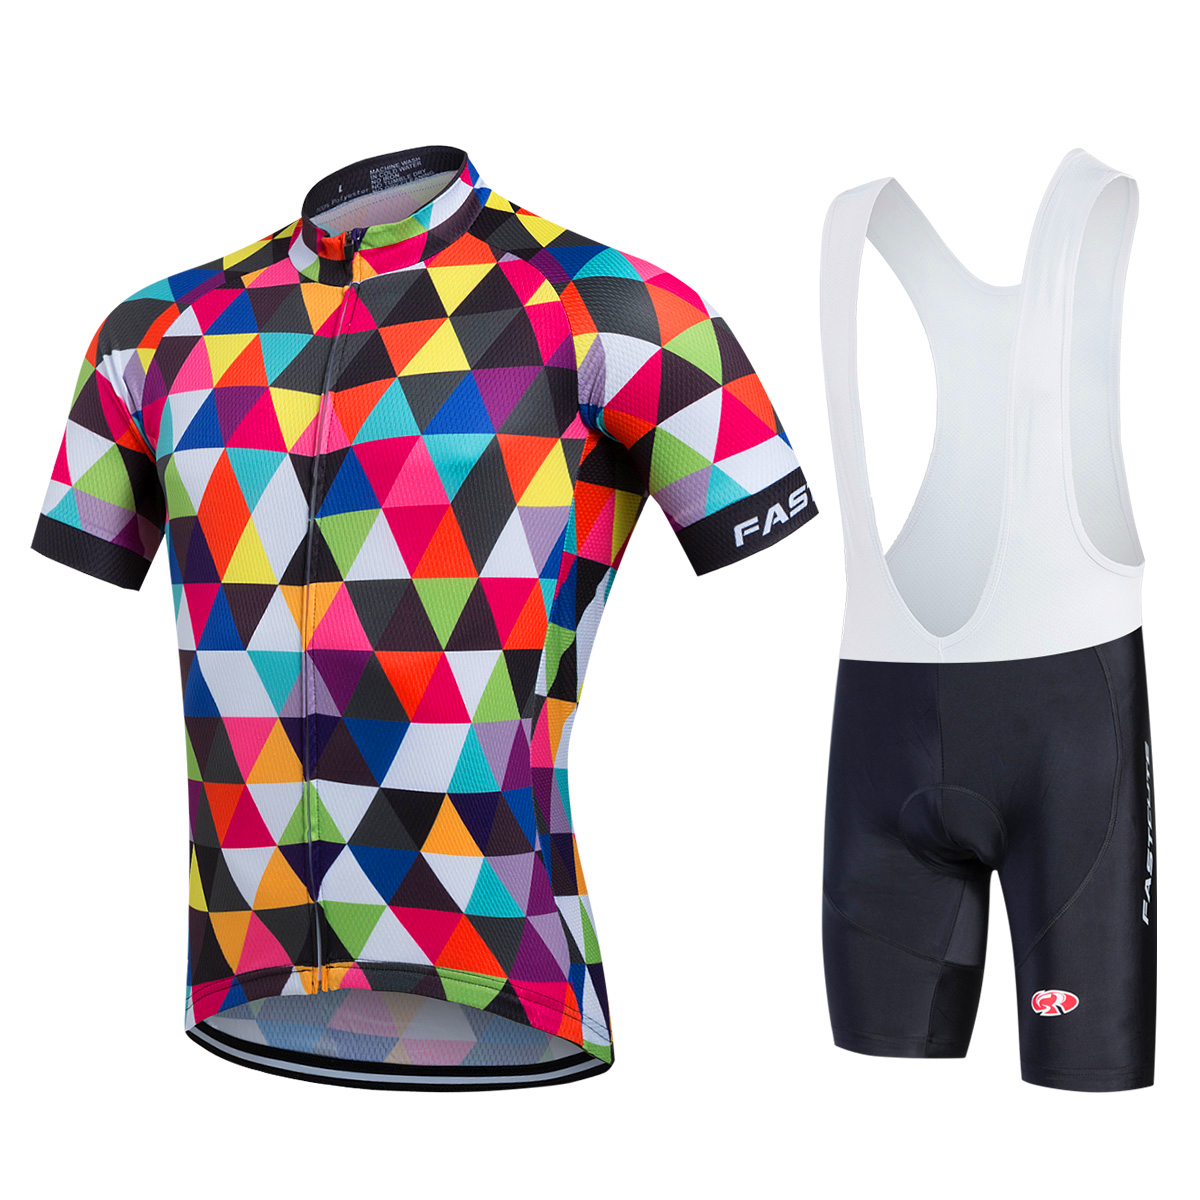 09ea7202a Us 23 94 50 Off Fastcute Cycling Jersey Multicolor Bicycle Bike Short  Sleeve Sportswear Cycling Clothing Maillot Cycling Jerseys Set In Cycling  Sets